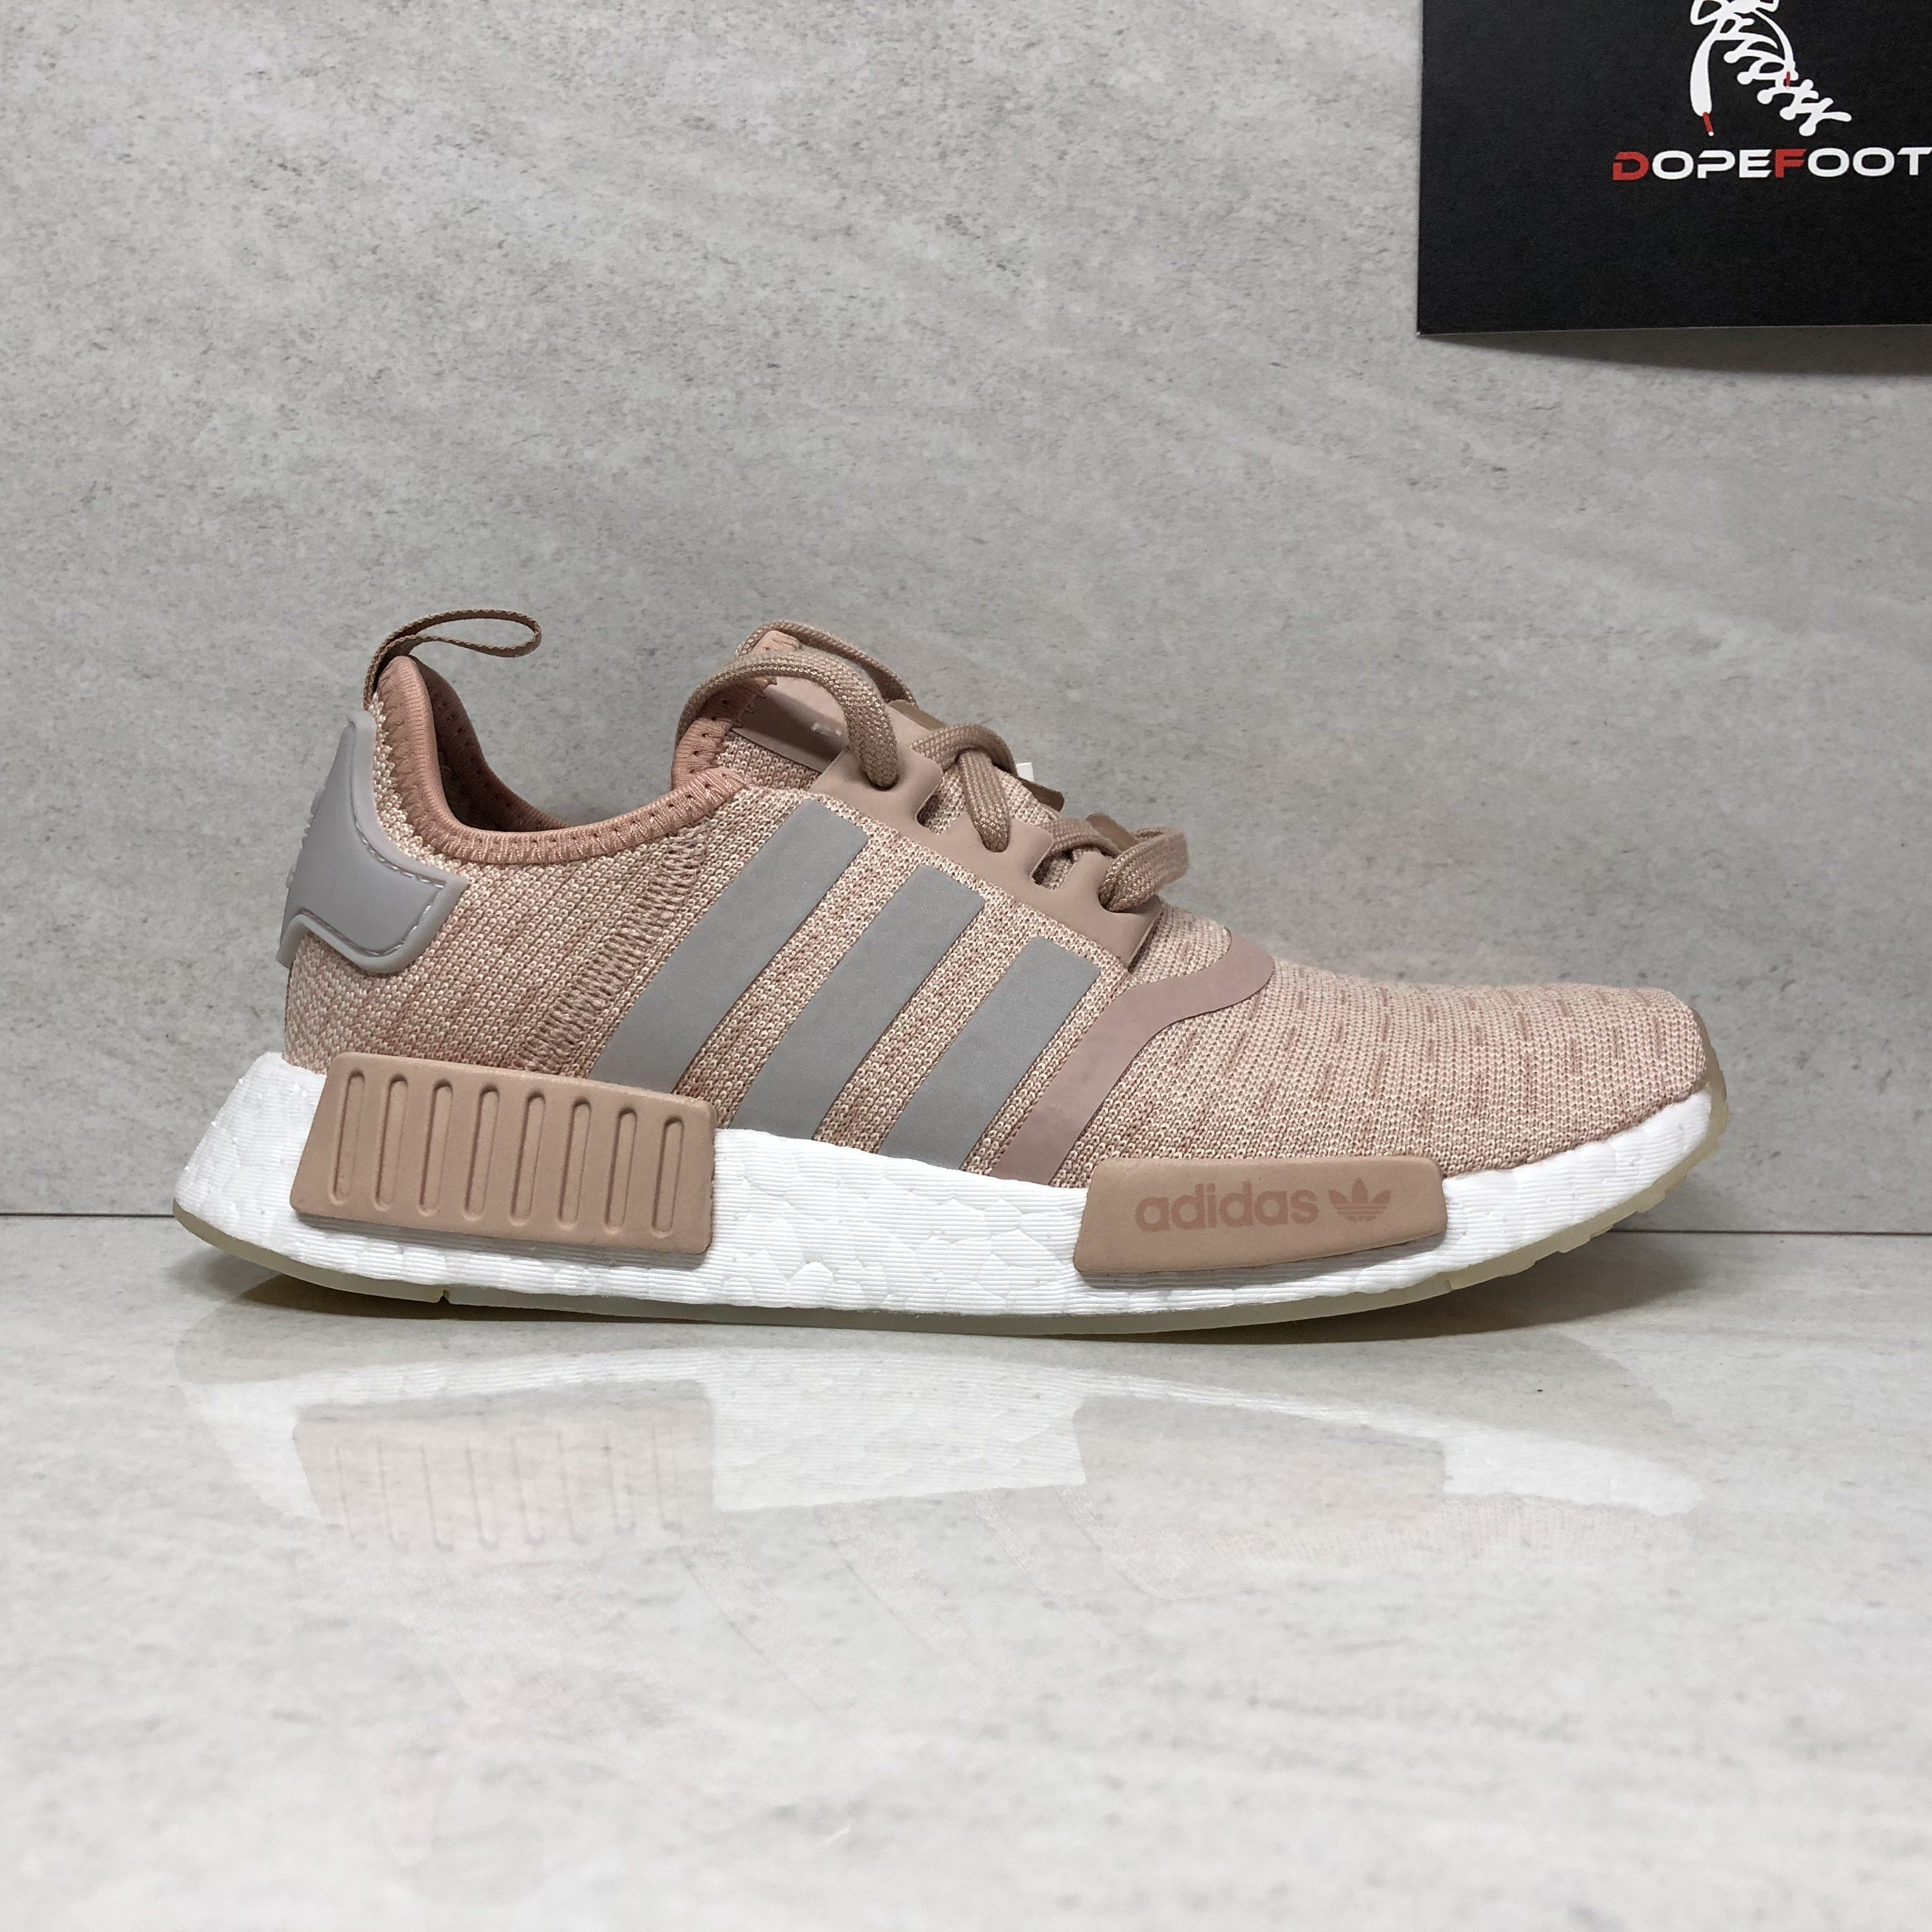 check out fcfa5 518c2 DS Women's Adidas NMD R1 Size 6.5 Ash Pearl CQ2012 | Products ...